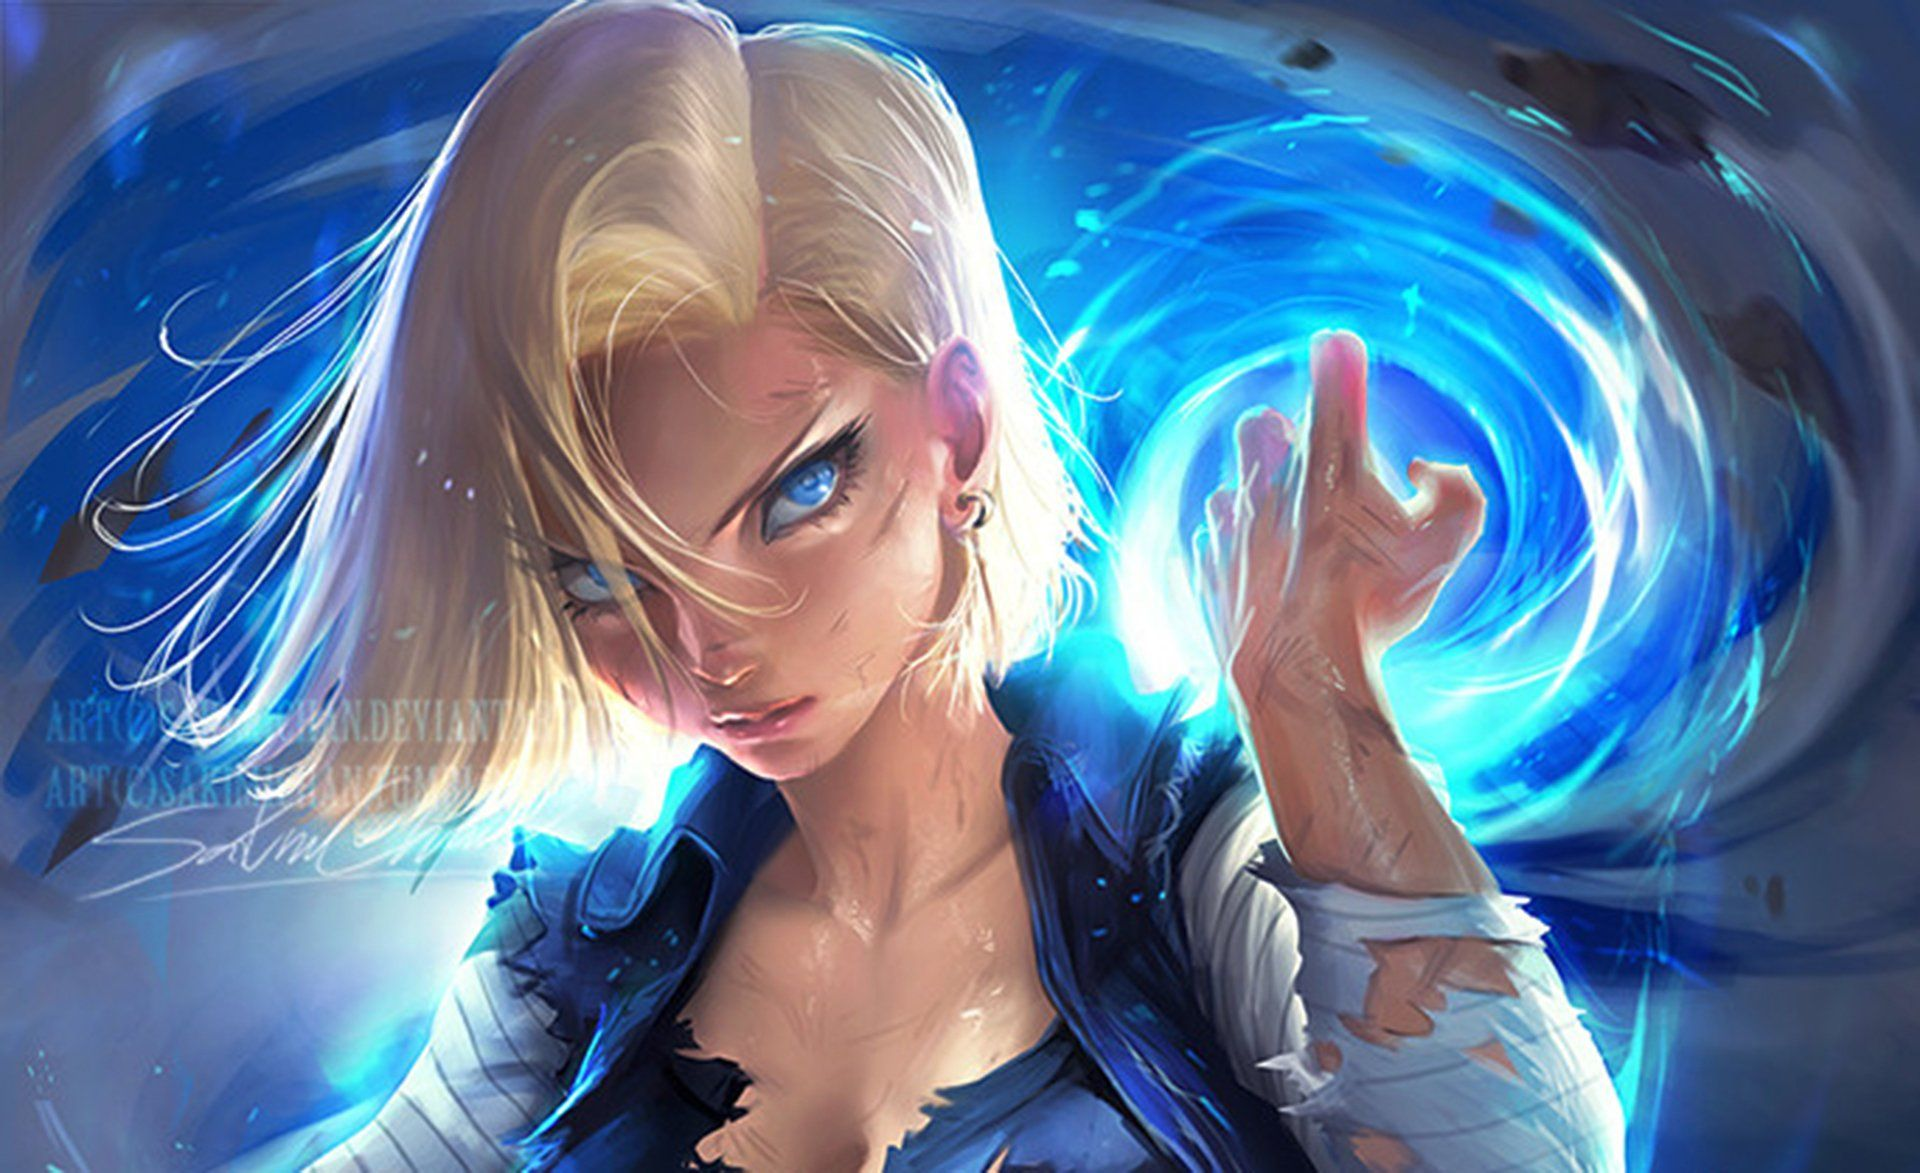 Android 18 Wallpapers Top Free Android 18 Backgrounds